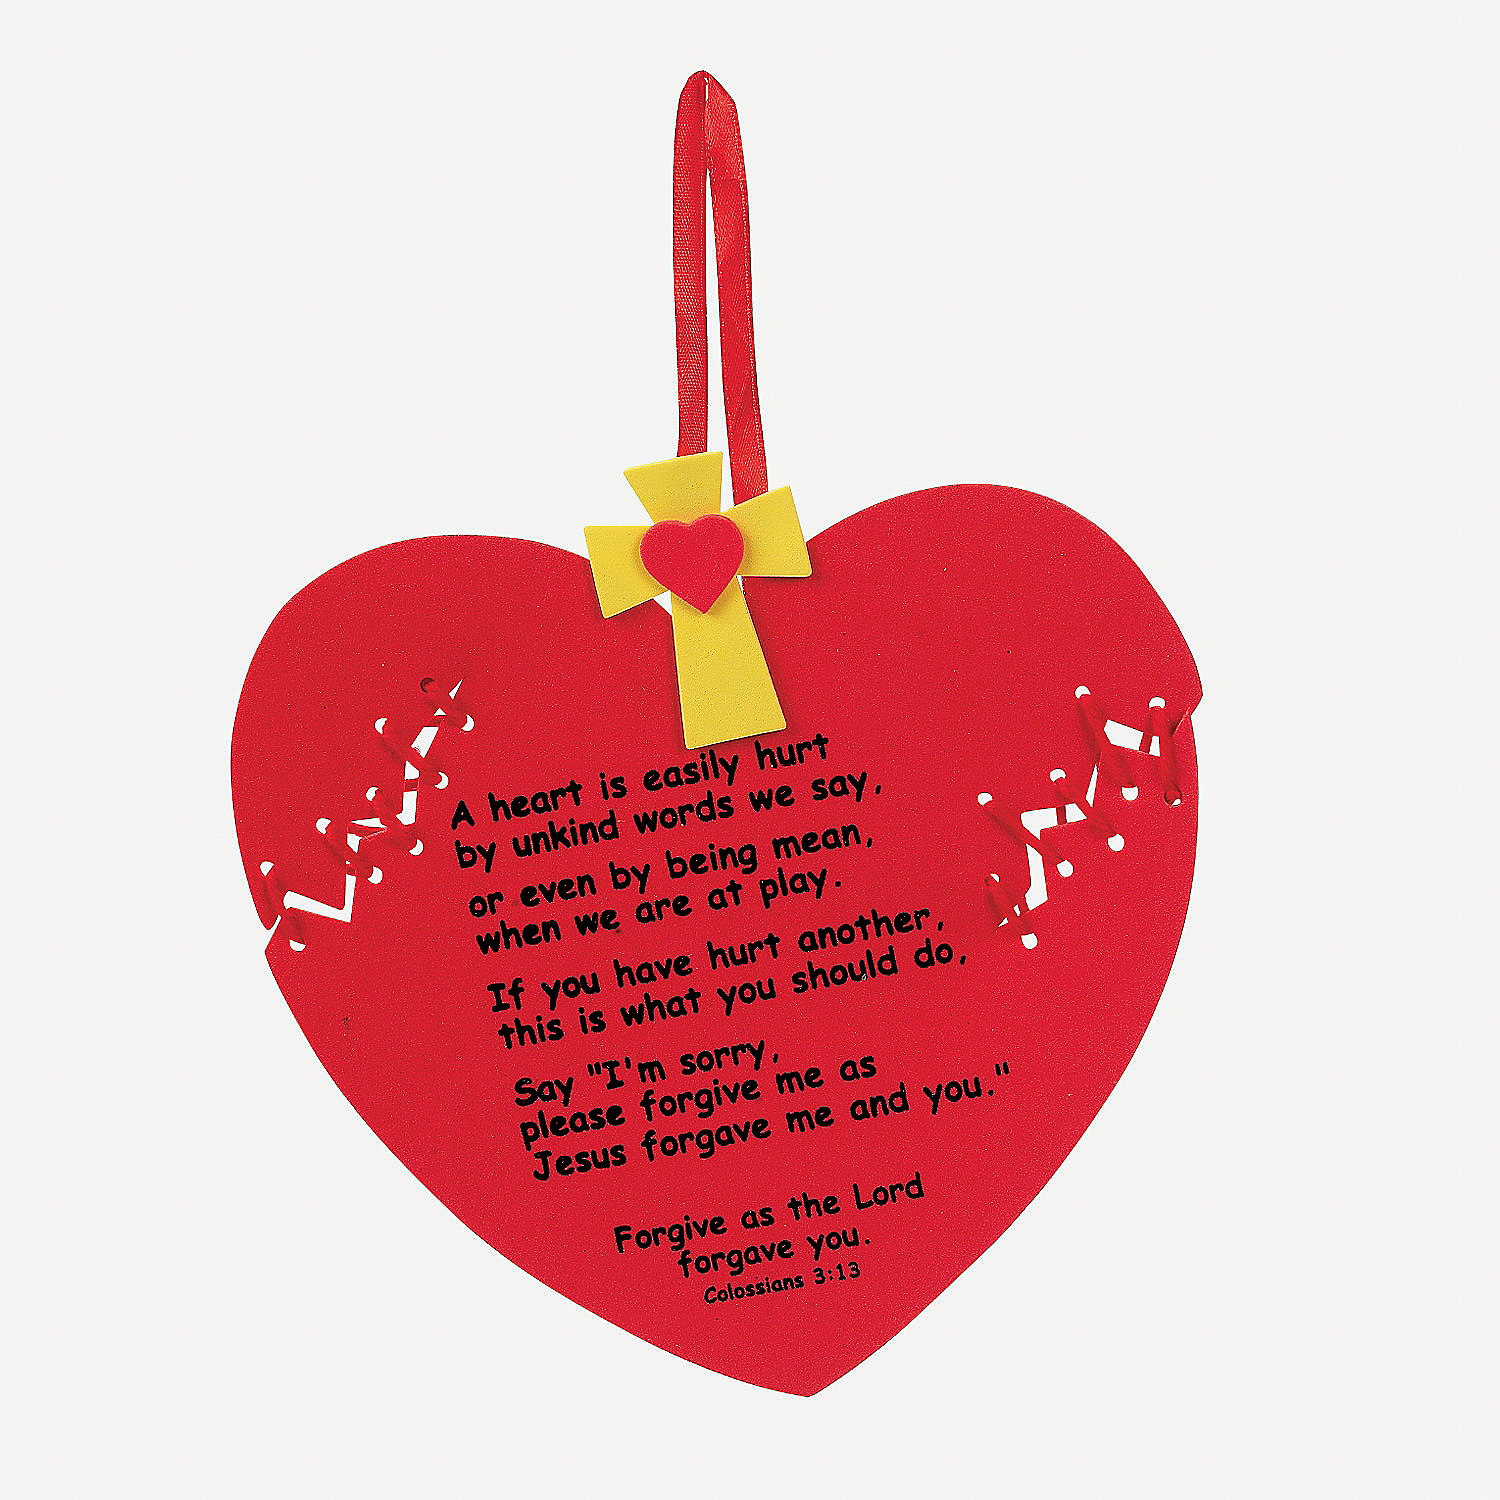 valentines day preschool quotes - Forgiveness Heart Craft Kit Oriental Trading Discontinued